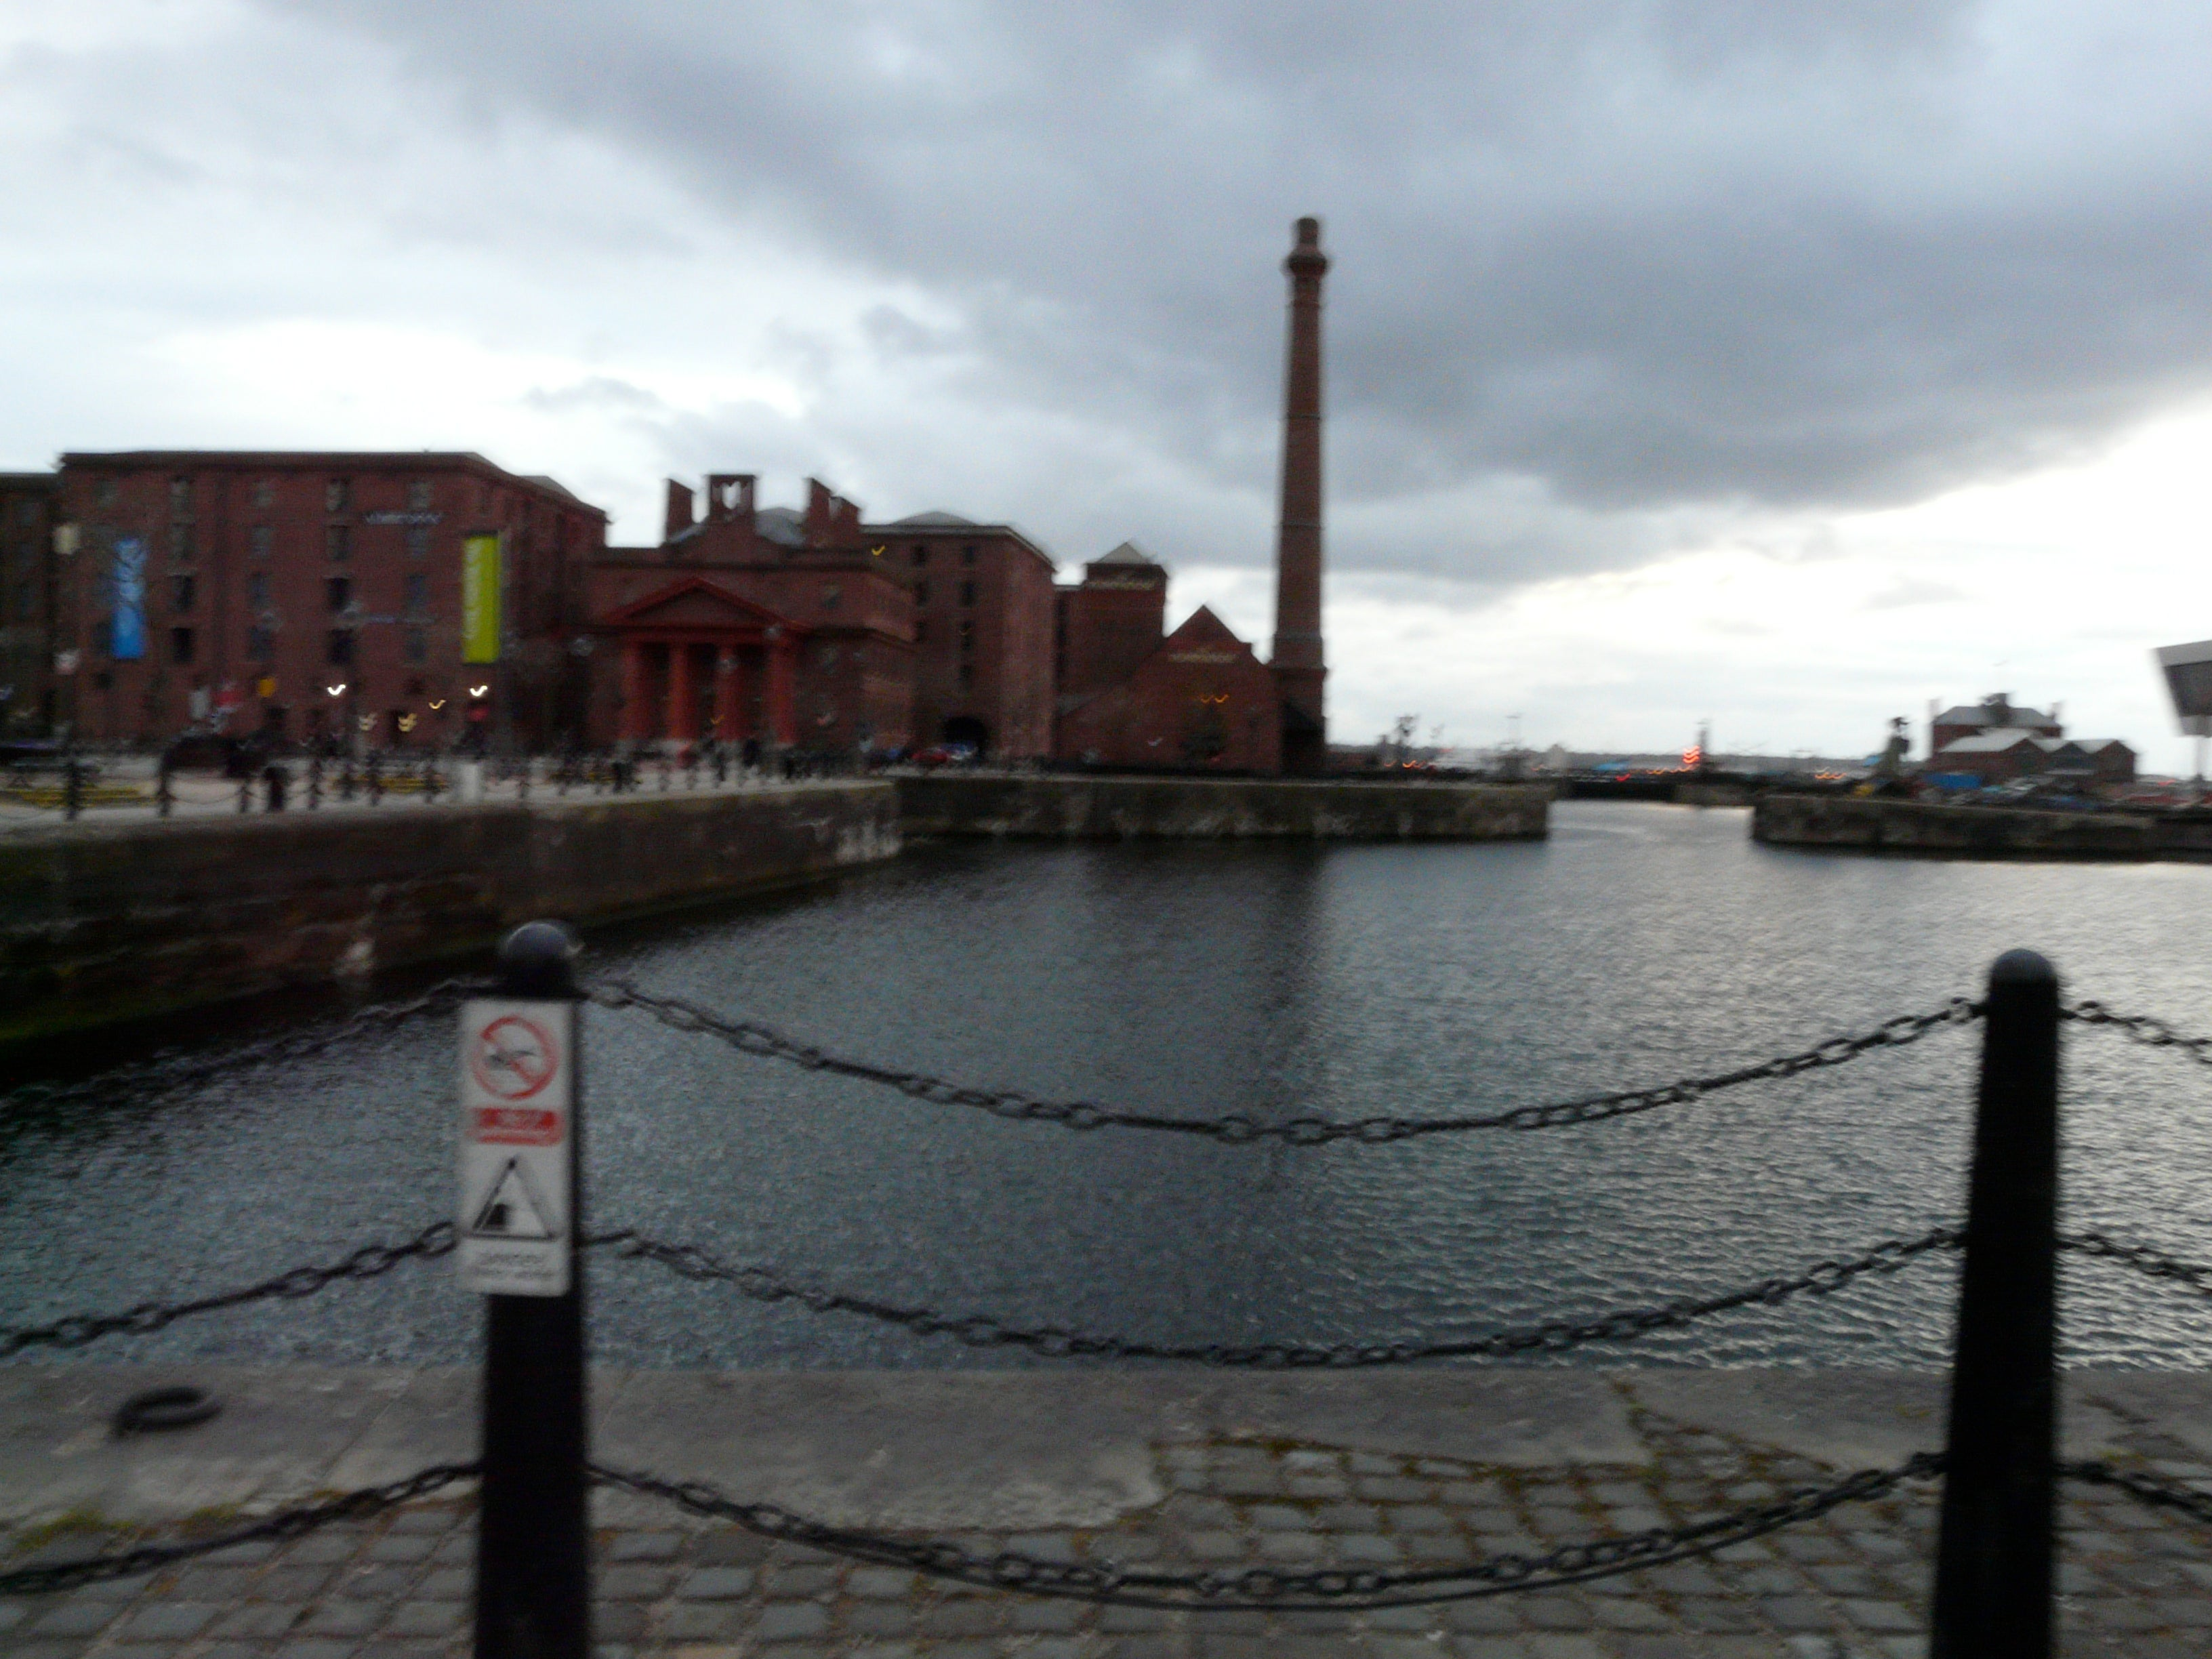 Agua en Royal Albert Dock